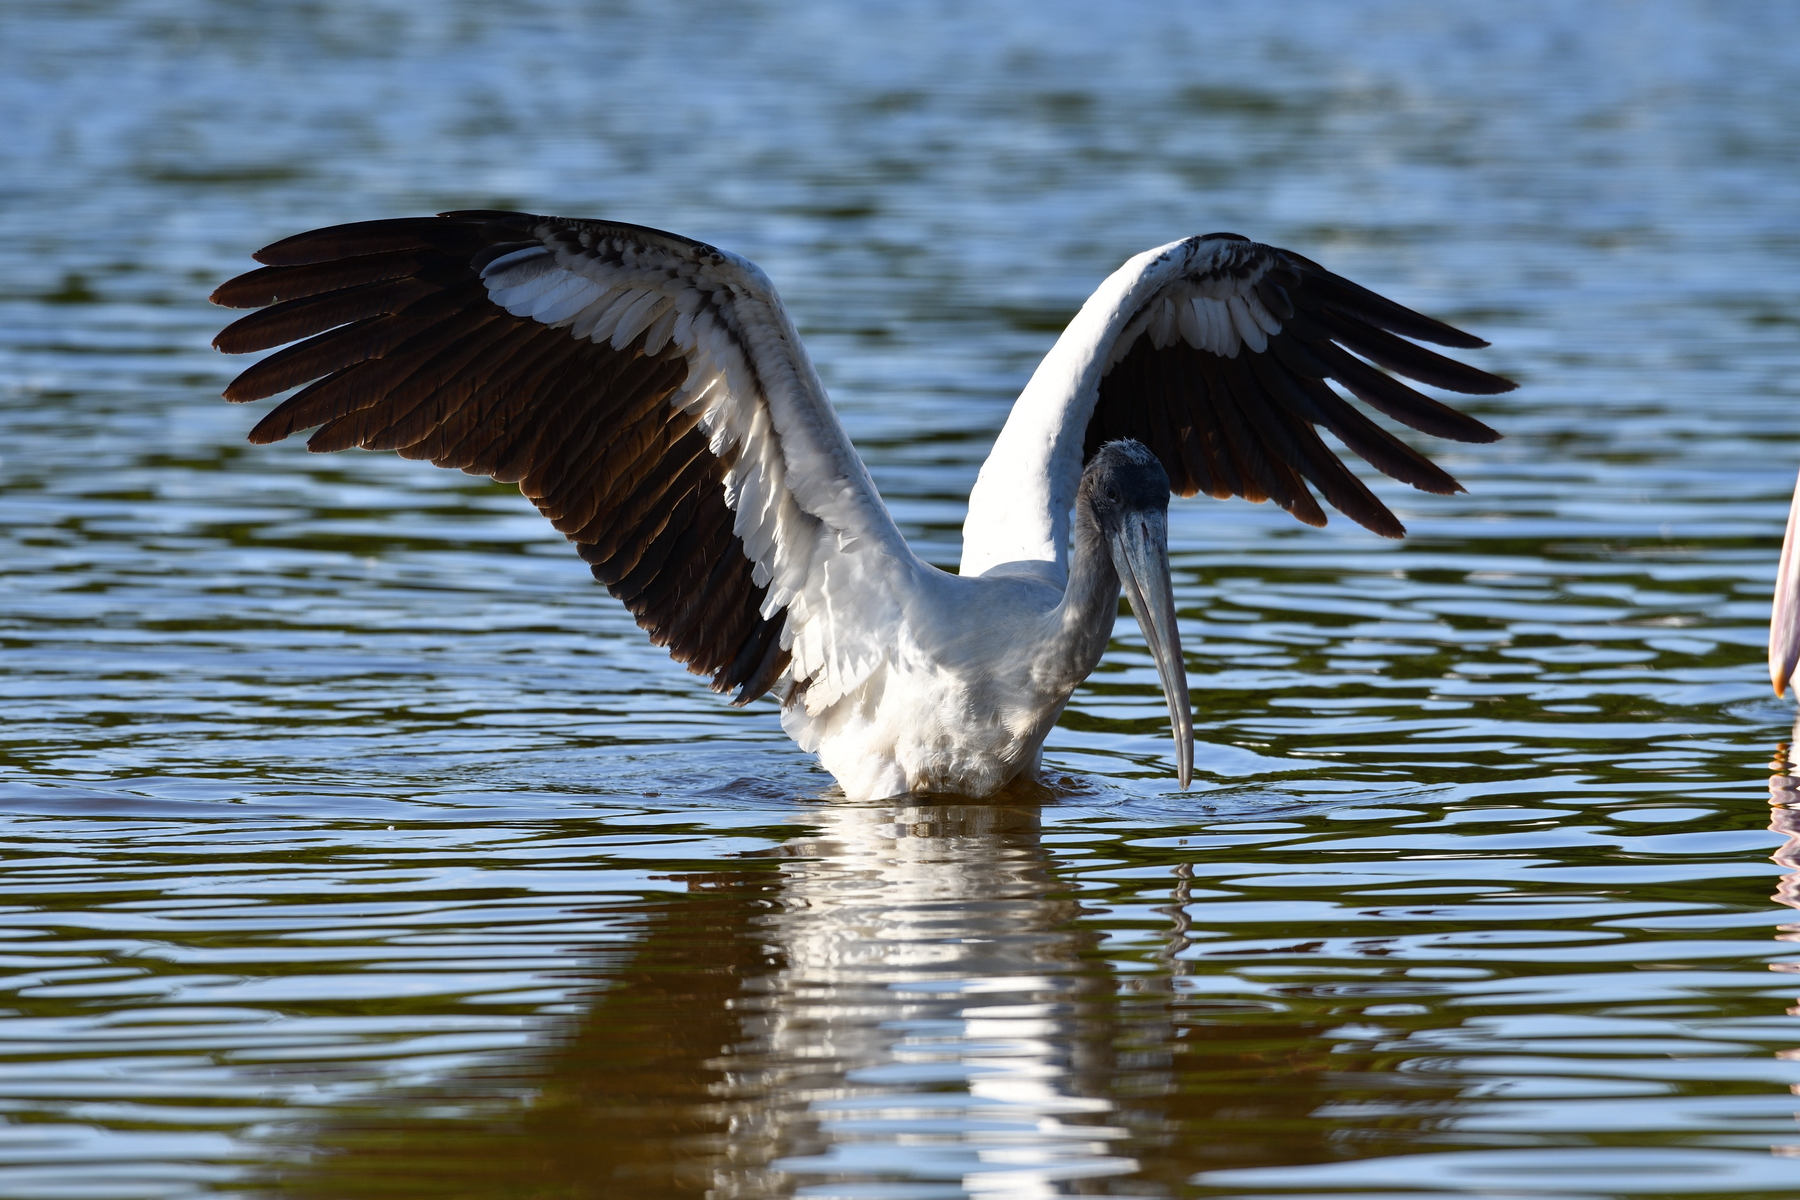 Sanibel Island; Wood Stork(s); Nikon D500 + AF-S 600mm